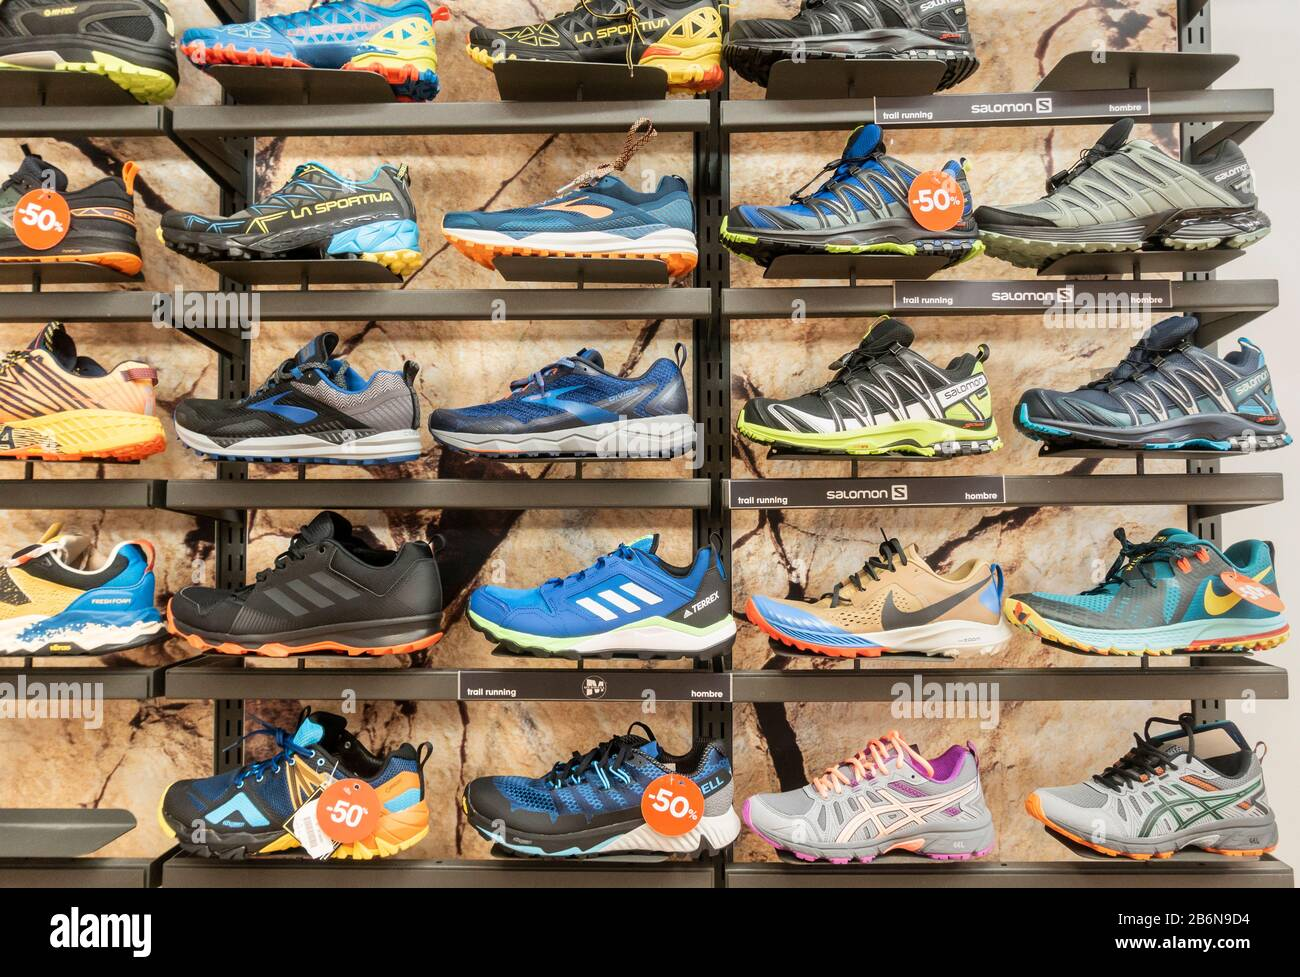 Trail running shoes store display Stock